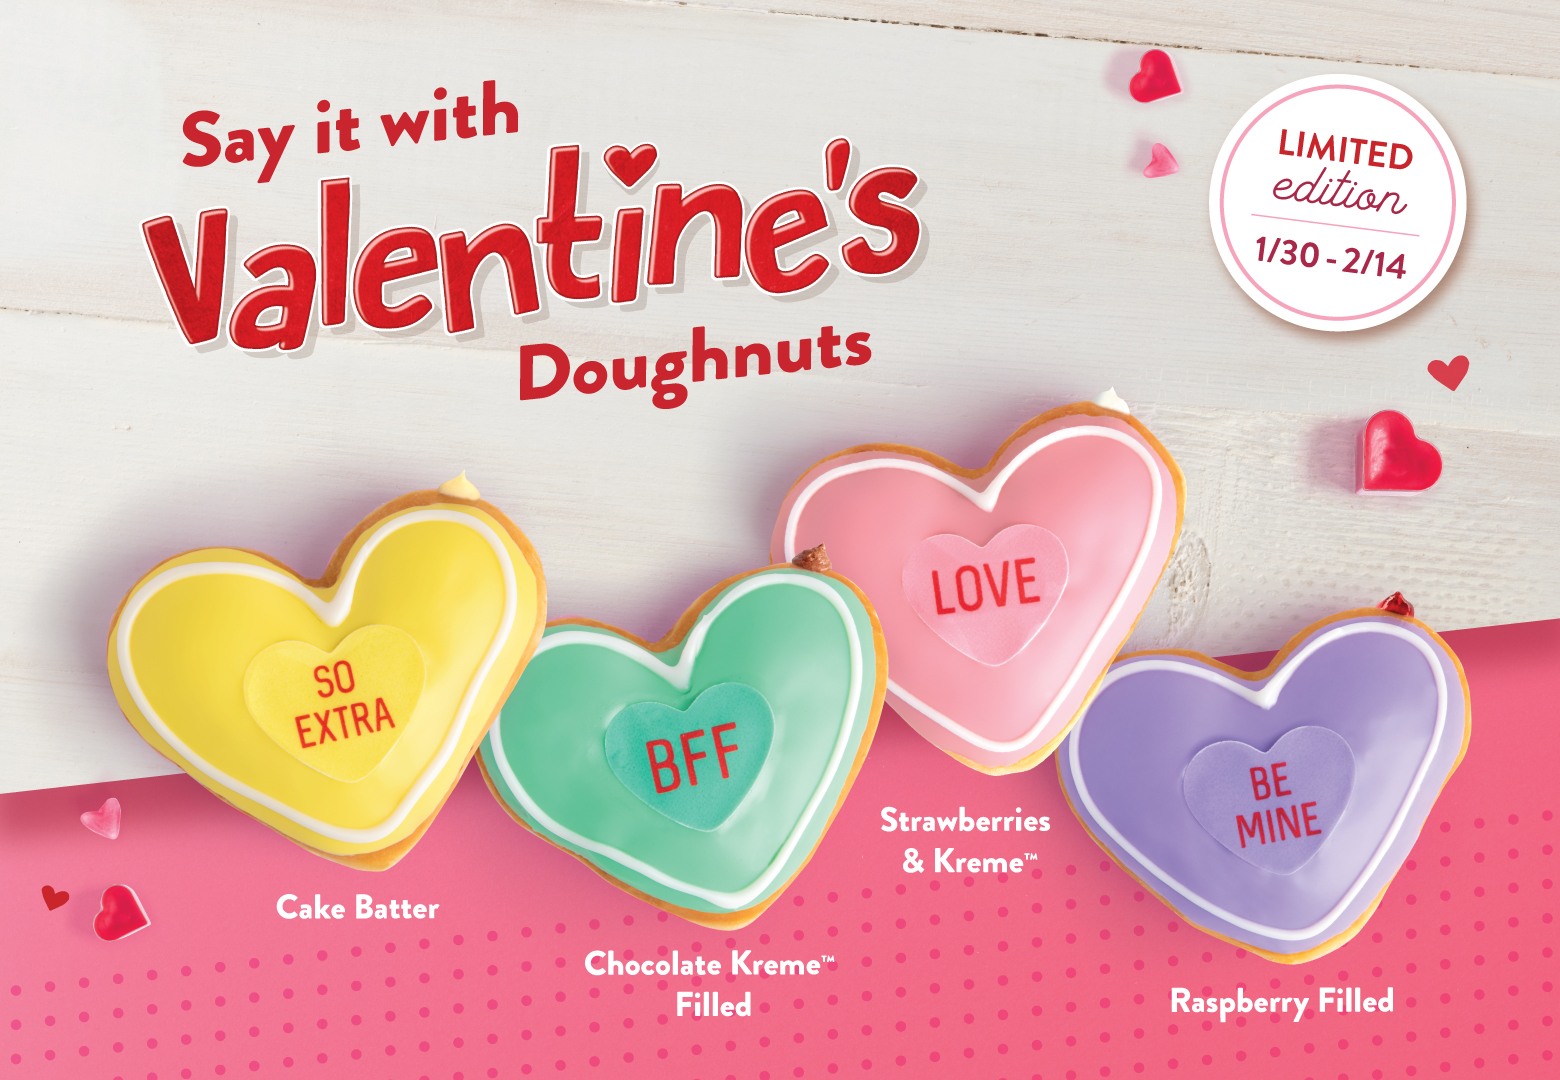 5440ec12739f Say it with Valentines s conversation doughnuts  the yellow doughnut with  red text says,